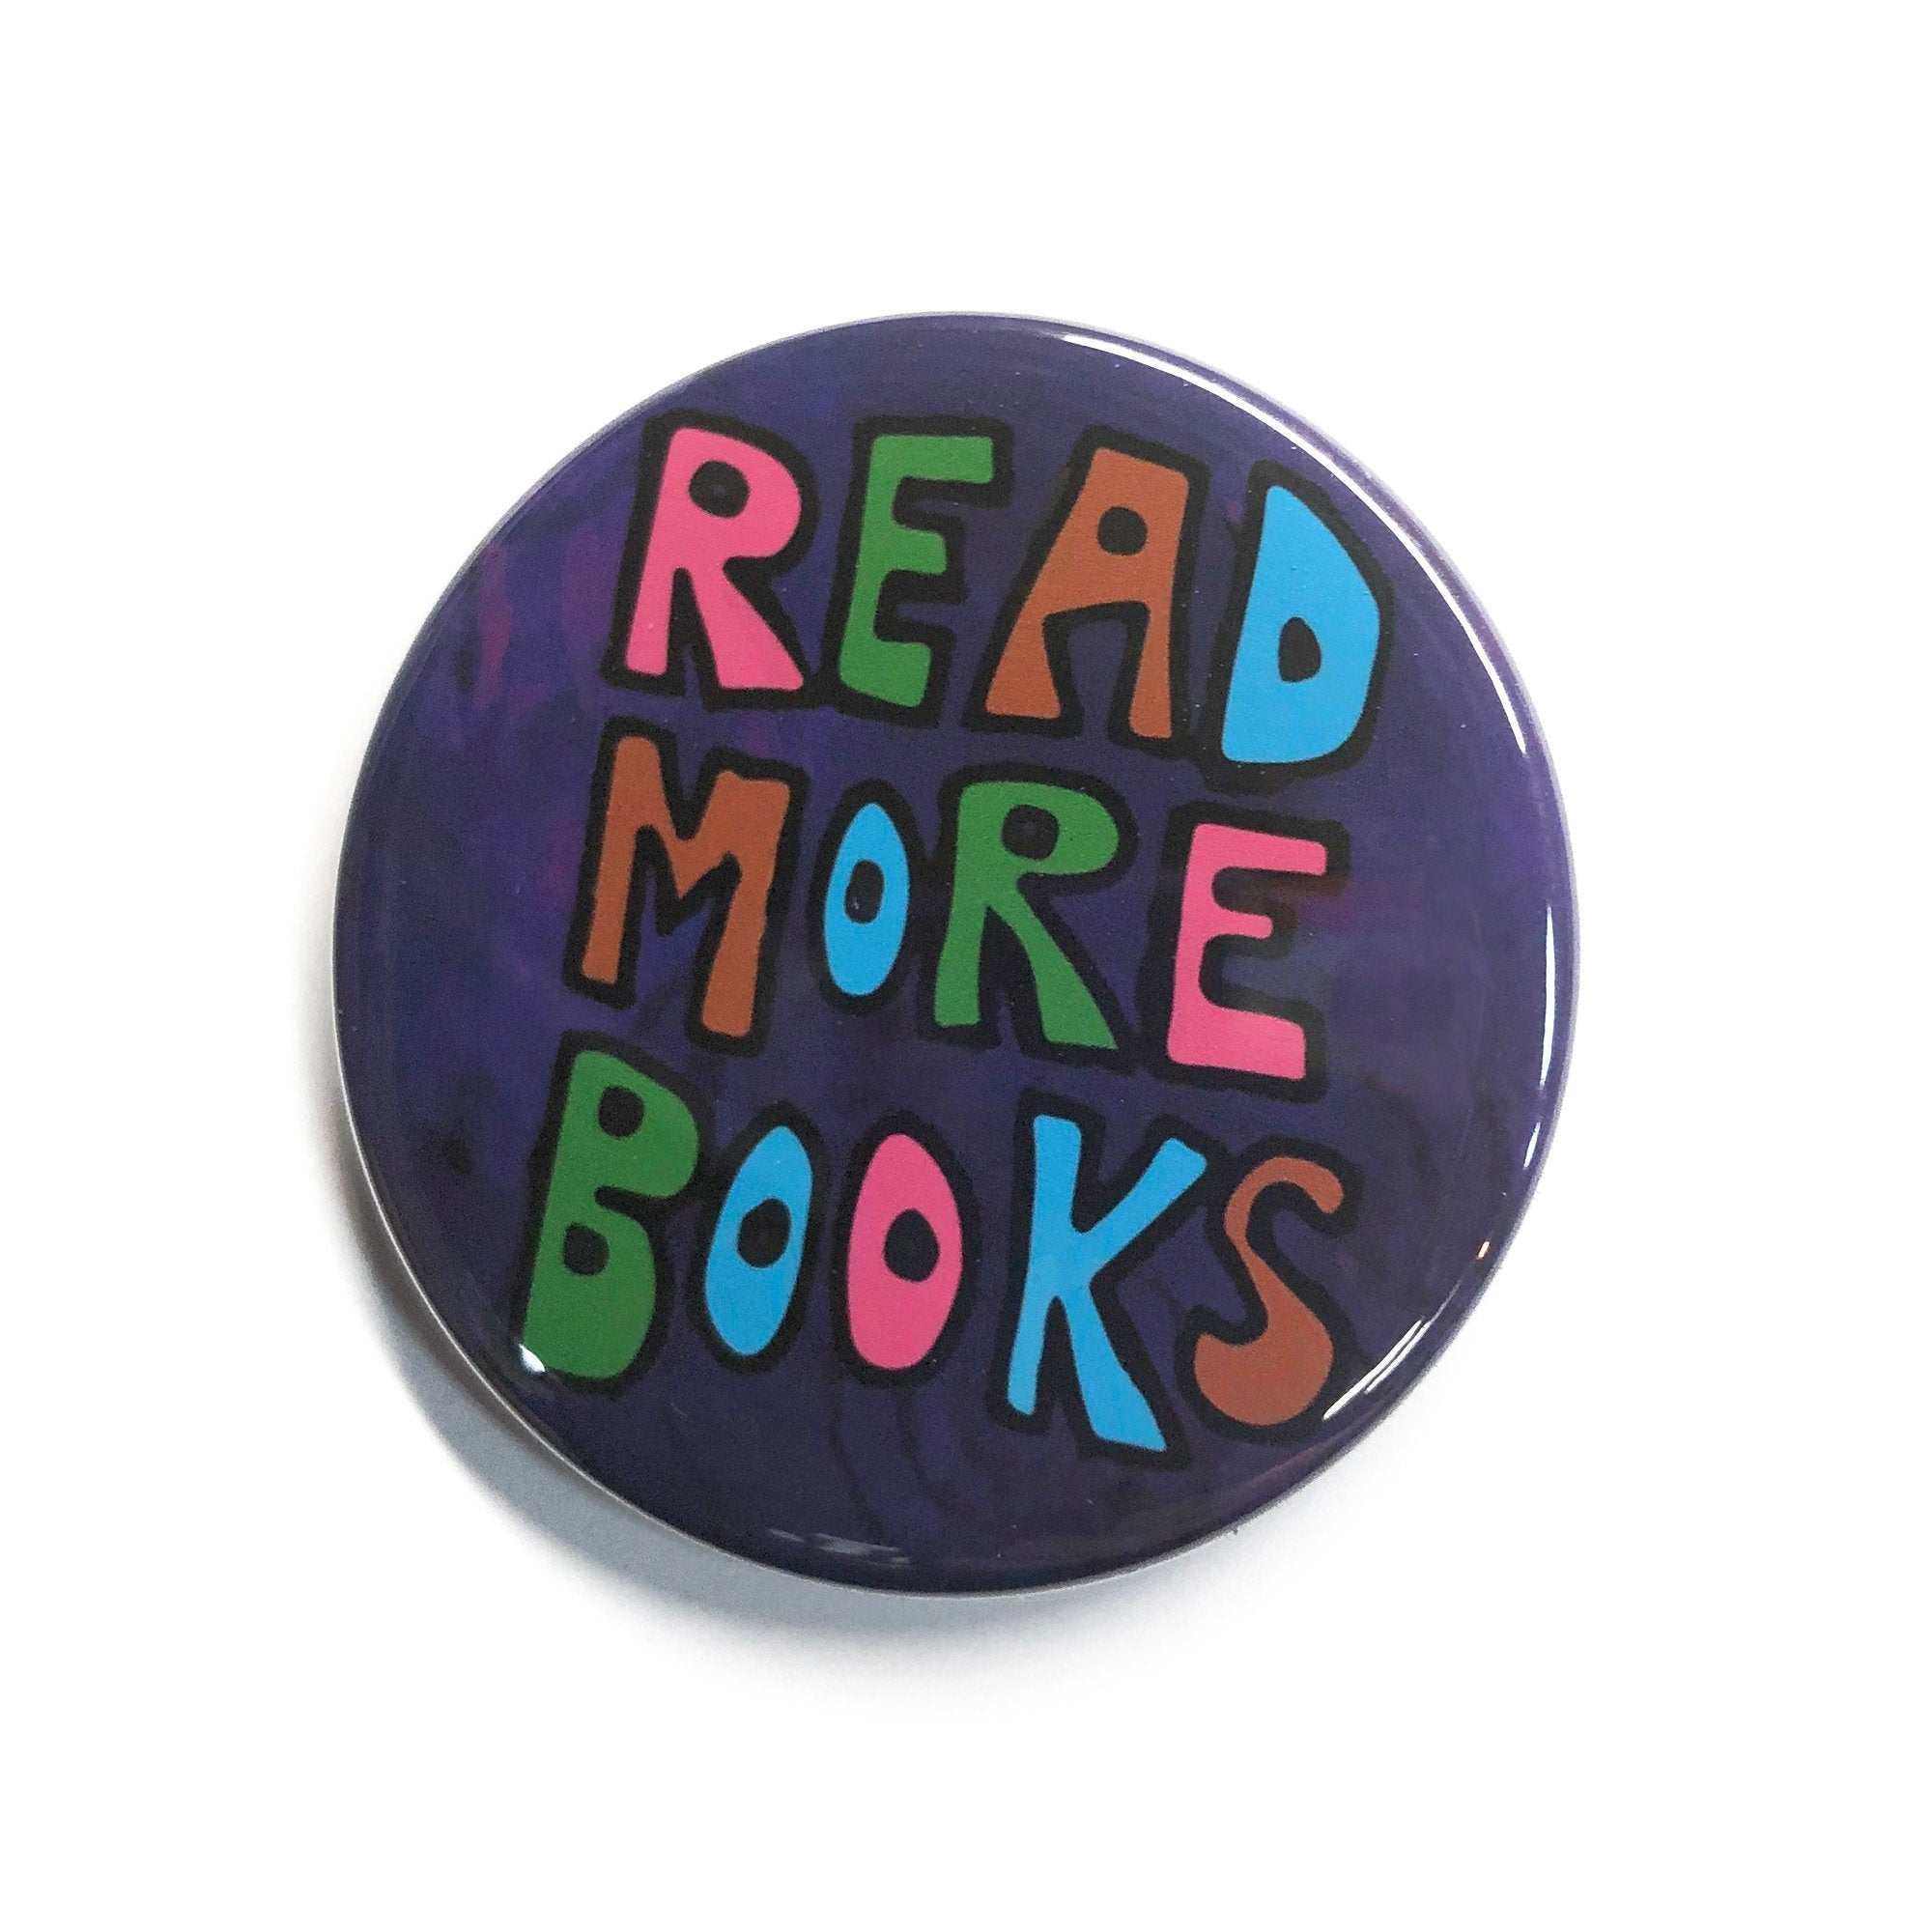 Read More Books Pin Back Button, Fridge Magnet, or Pocket Mirror